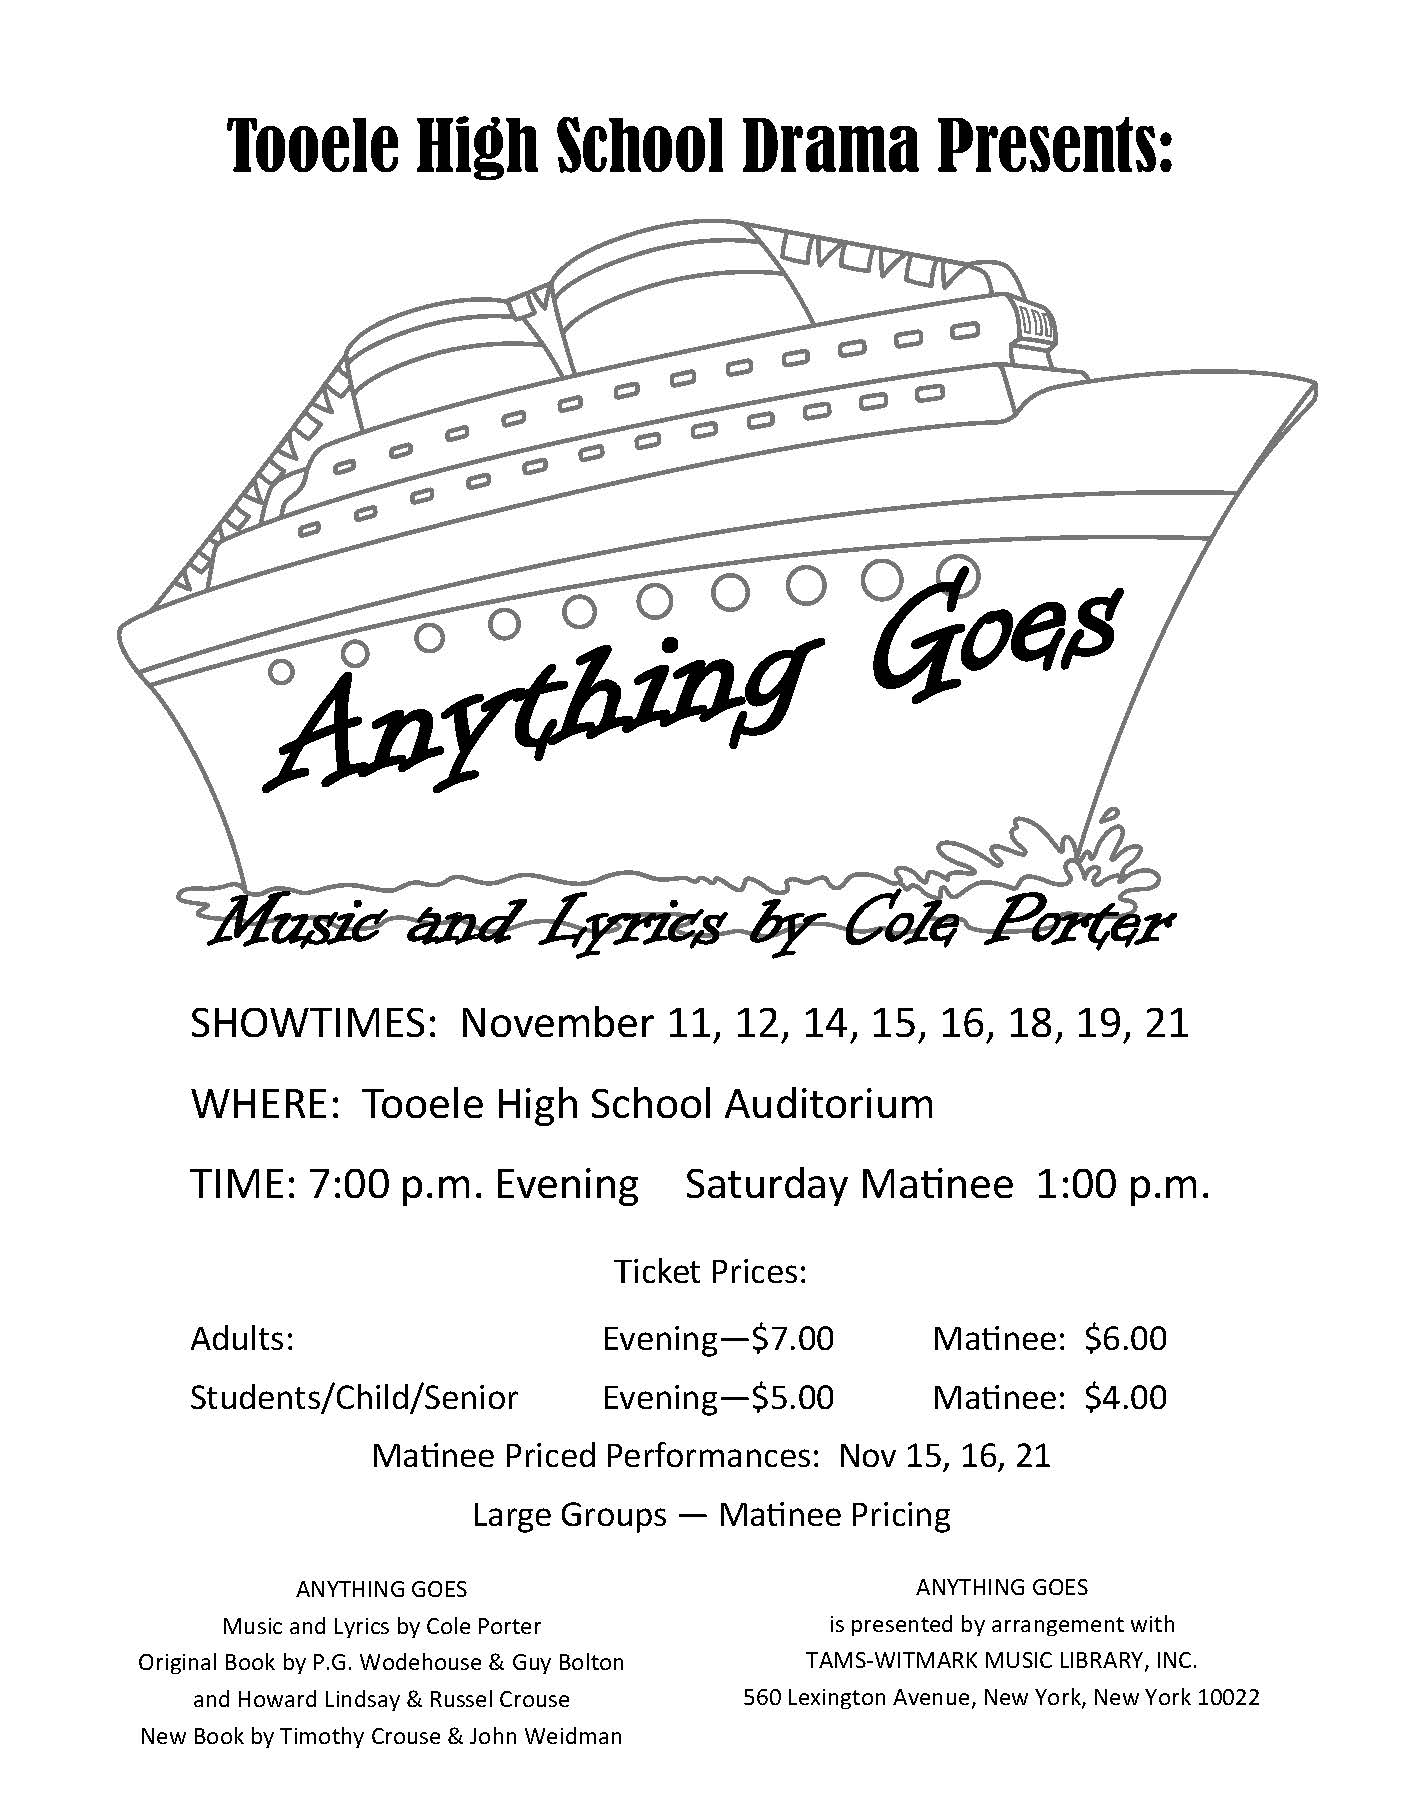 "T.H.S. Drama presents ""Anything Goes"" @ Tooele High School Auditorium 